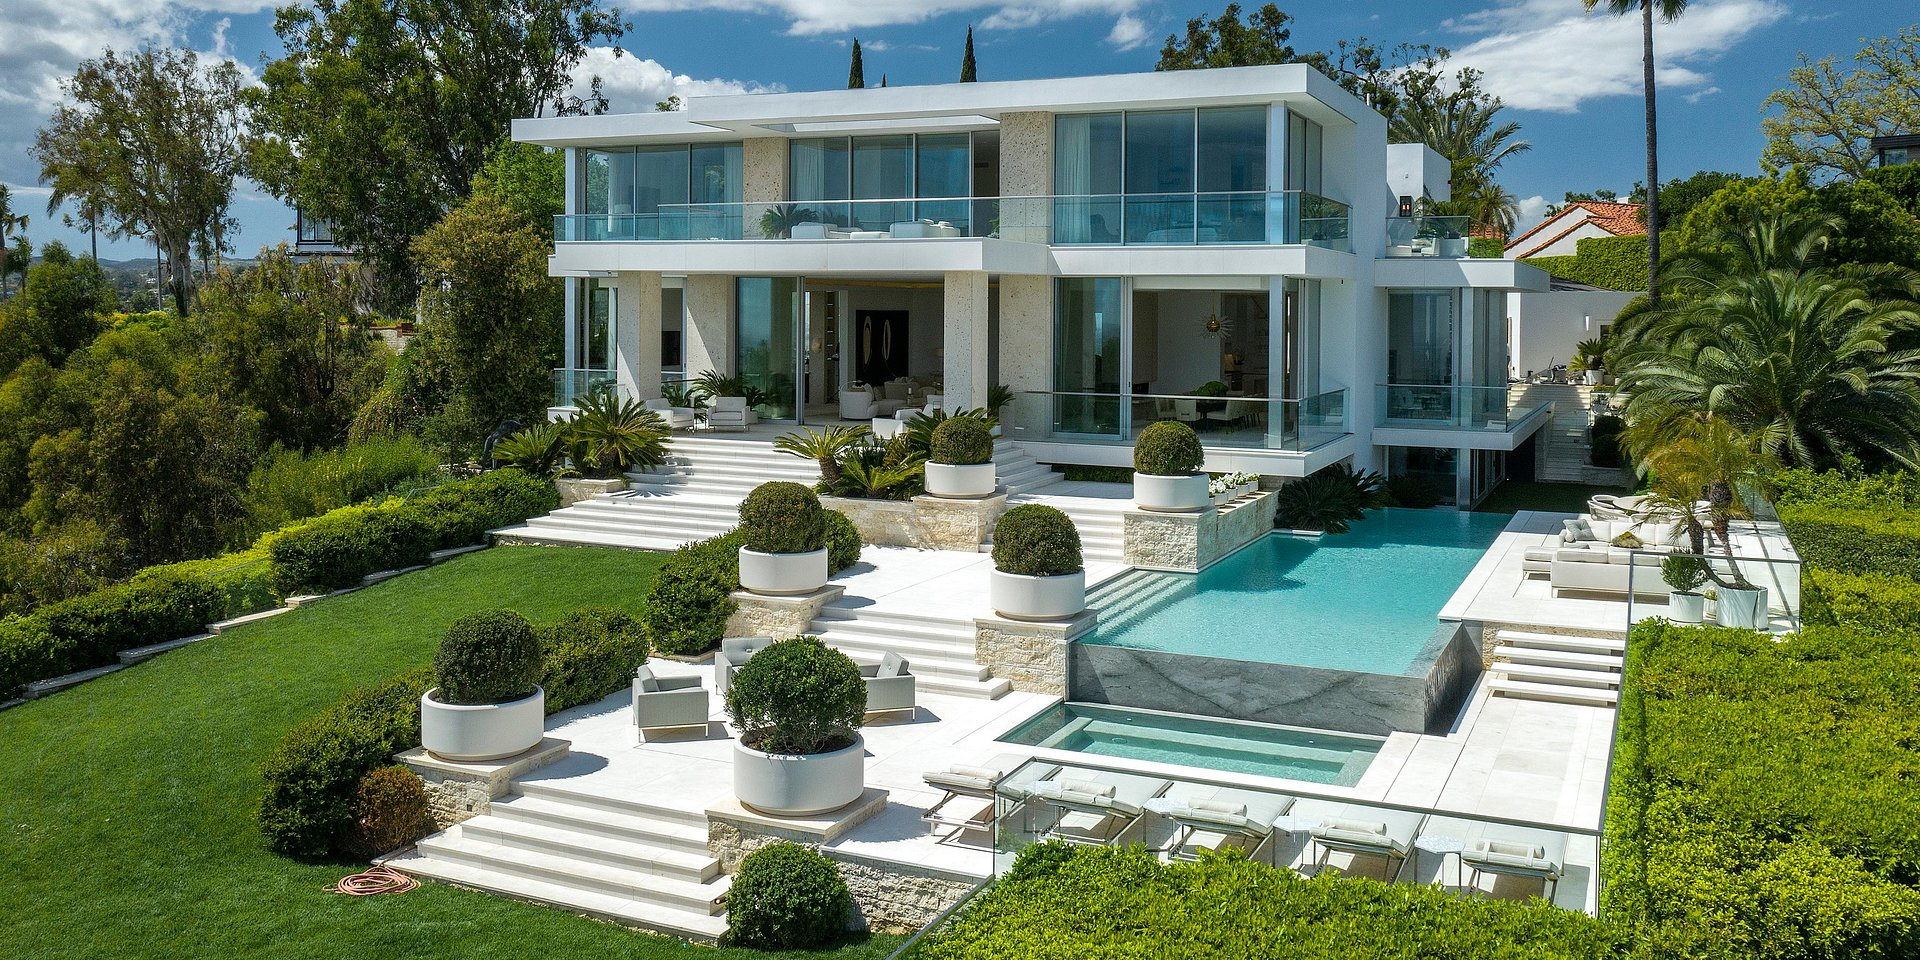 Coldwell Banker Residential Brokerage Lists Beverly Hills Property for $46.75 Million